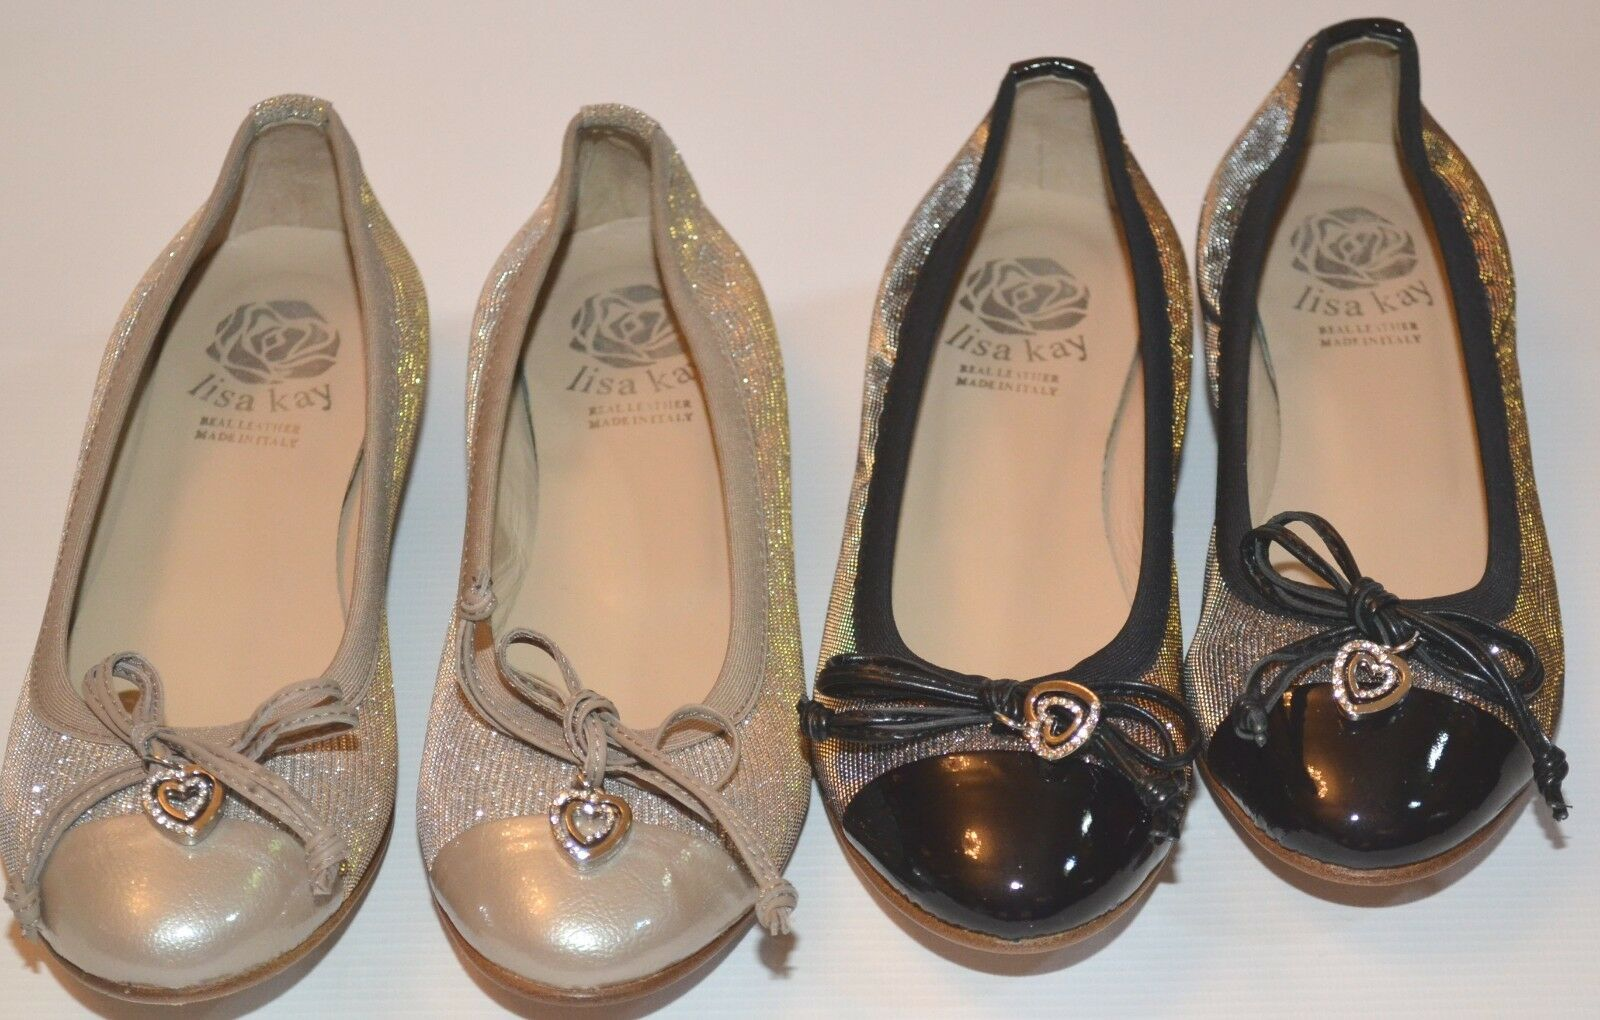 LISA KAY DOLLY IRIDESCENT TAUPE PATENT PATENT PATENT LEATHER BALLERINA SHOES UK 3 EURO 36 d9add2